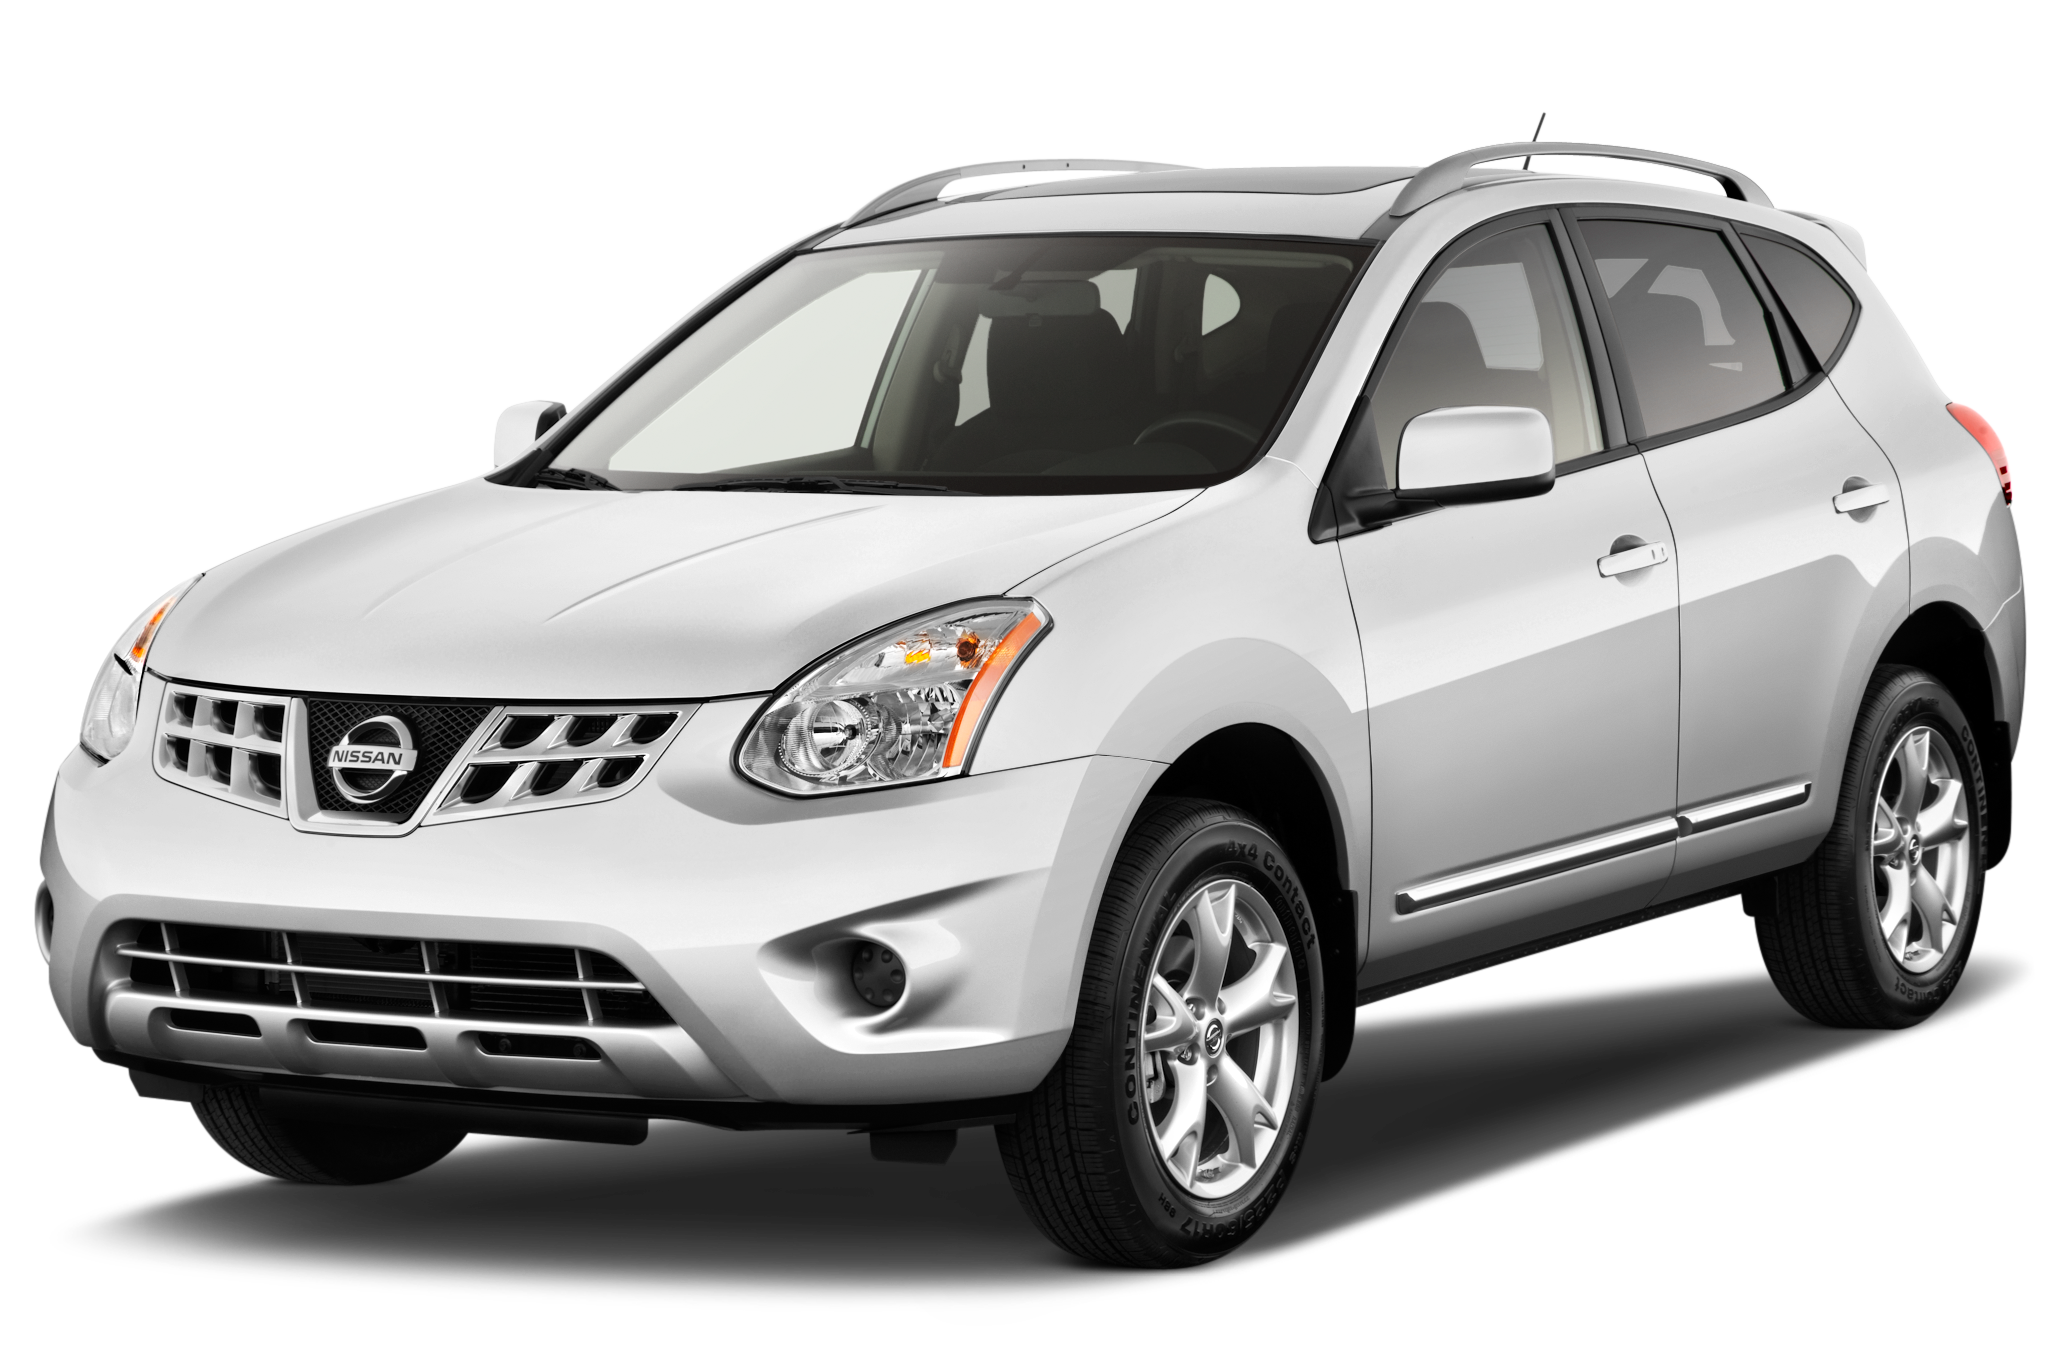 2013 nissan rogue pricing msn autos. Black Bedroom Furniture Sets. Home Design Ideas